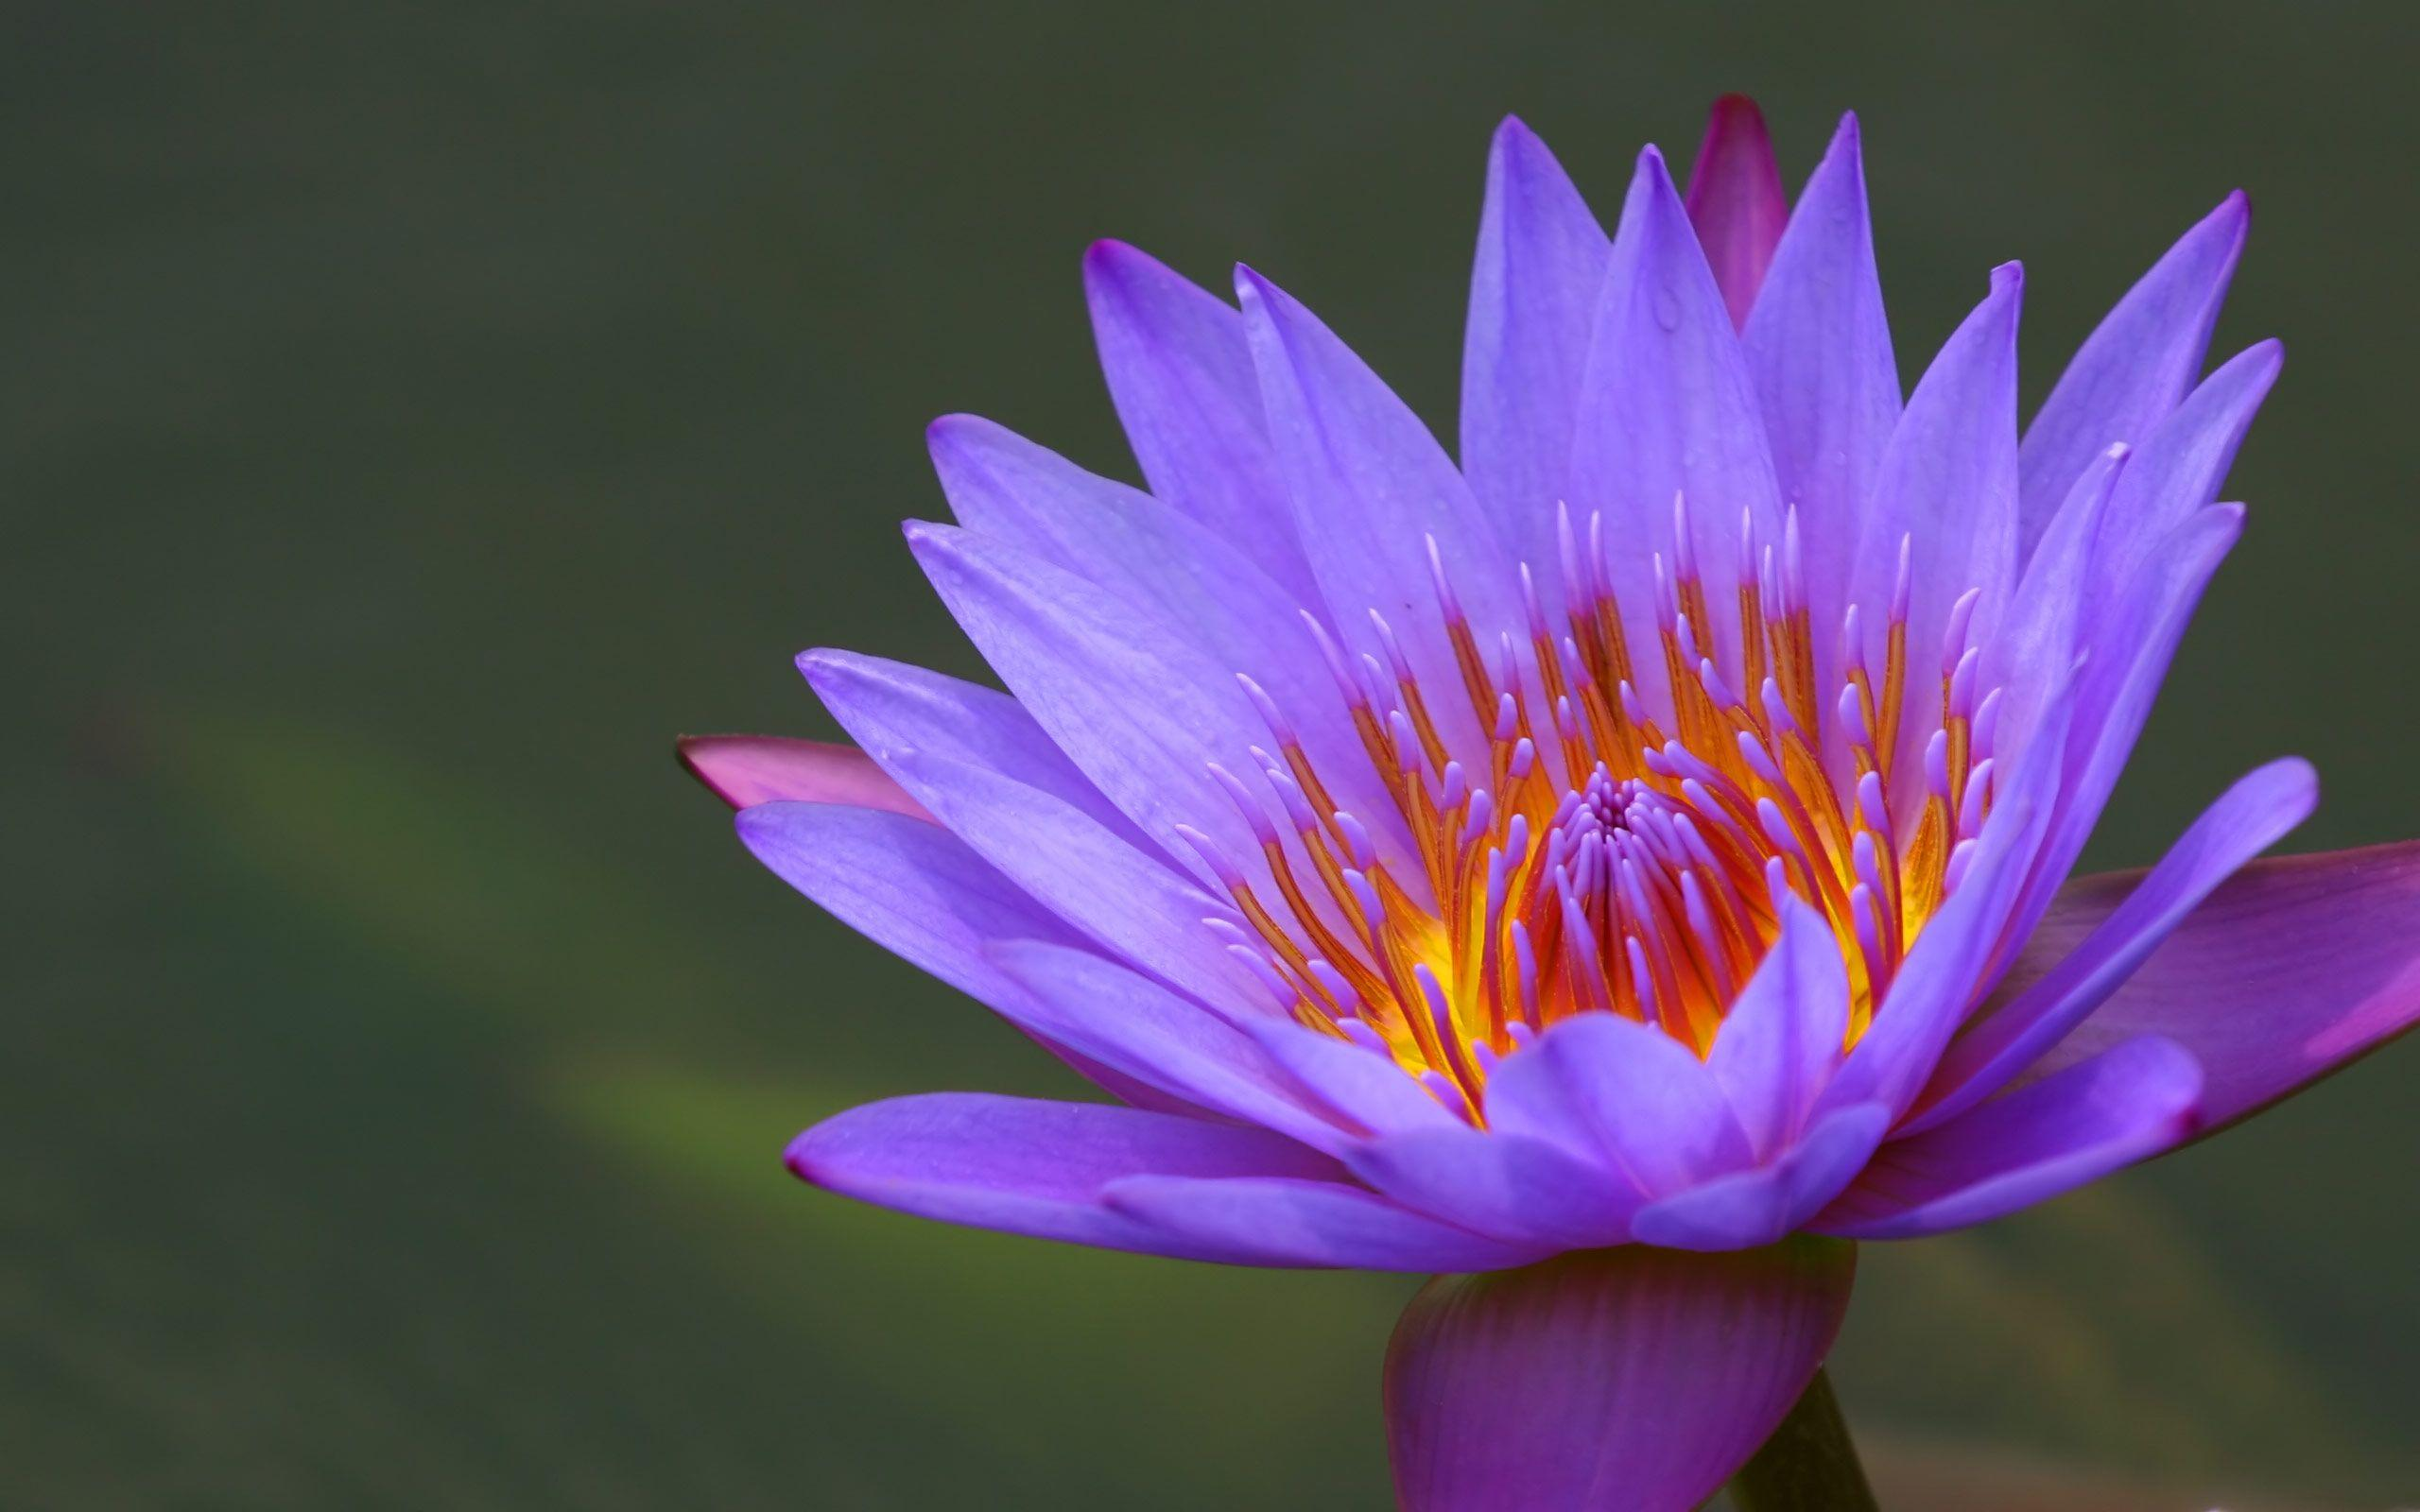 Water Lily Wallpapers | Flowers Wallpapers Gallery - PC ...